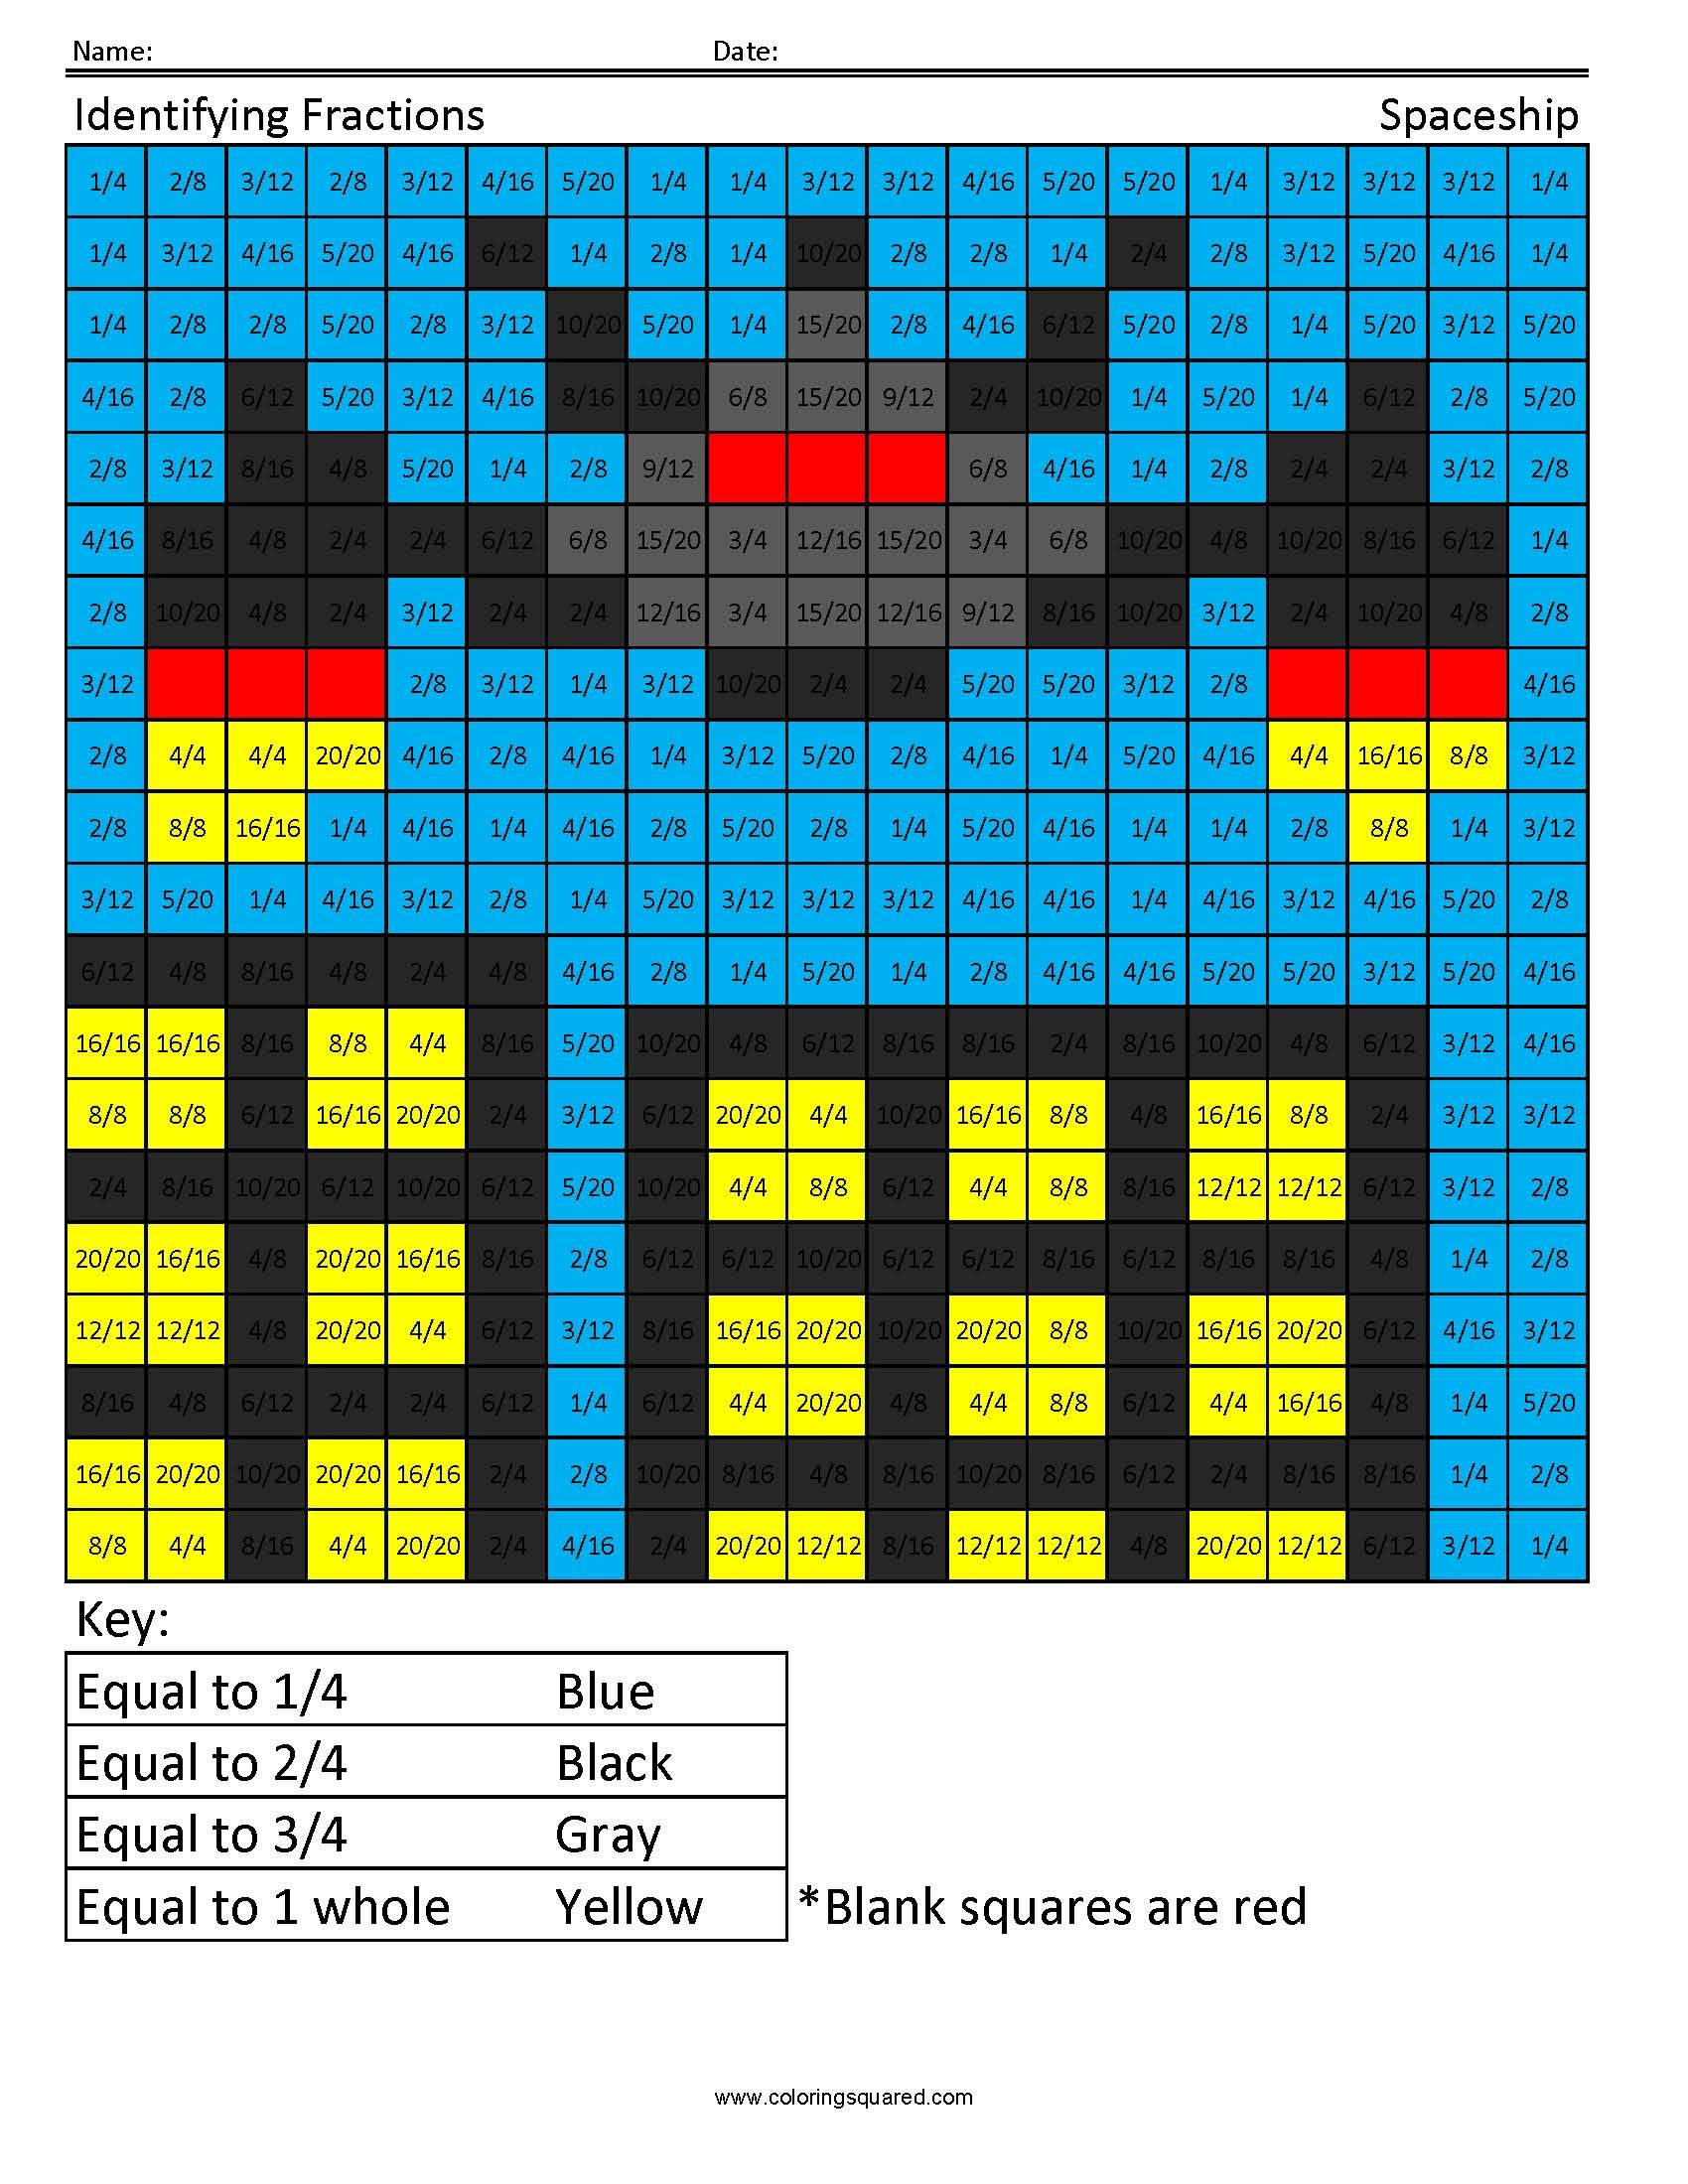 Identifying Fractions- Spaceship | Math | Pinterest | Spaceship ...